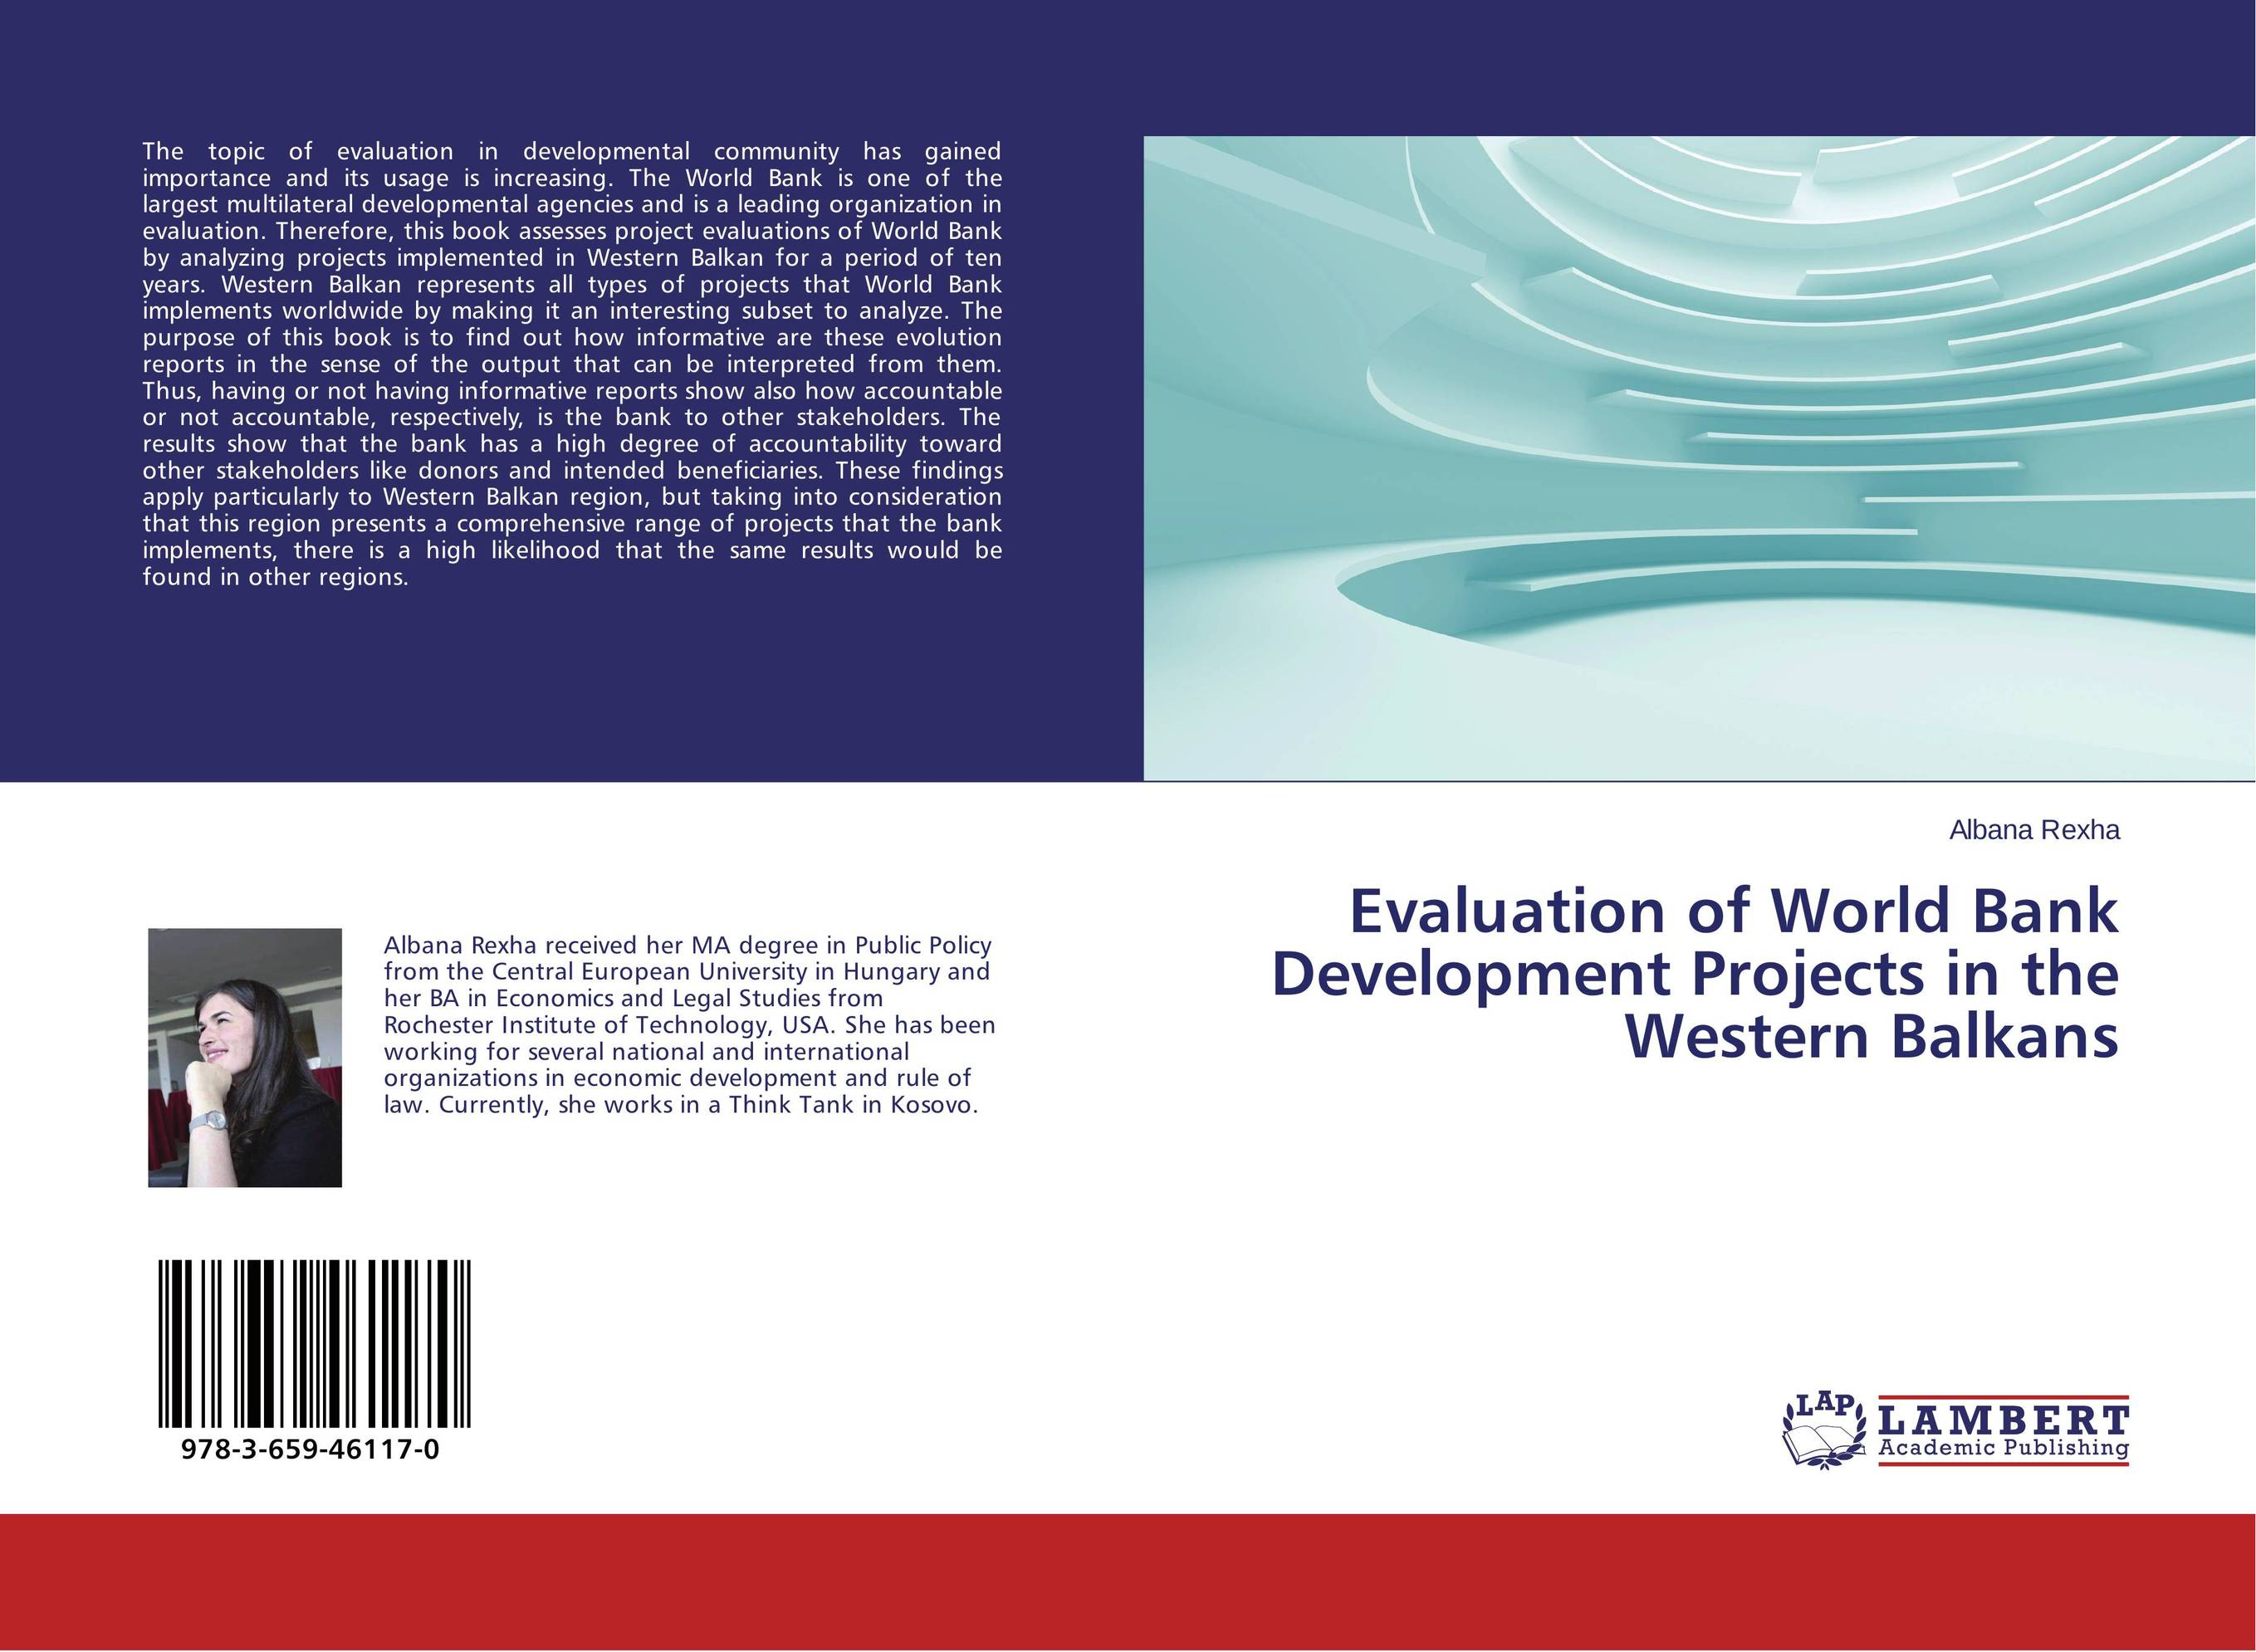 Evaluation of World Bank Development Projects in the Western Balkans